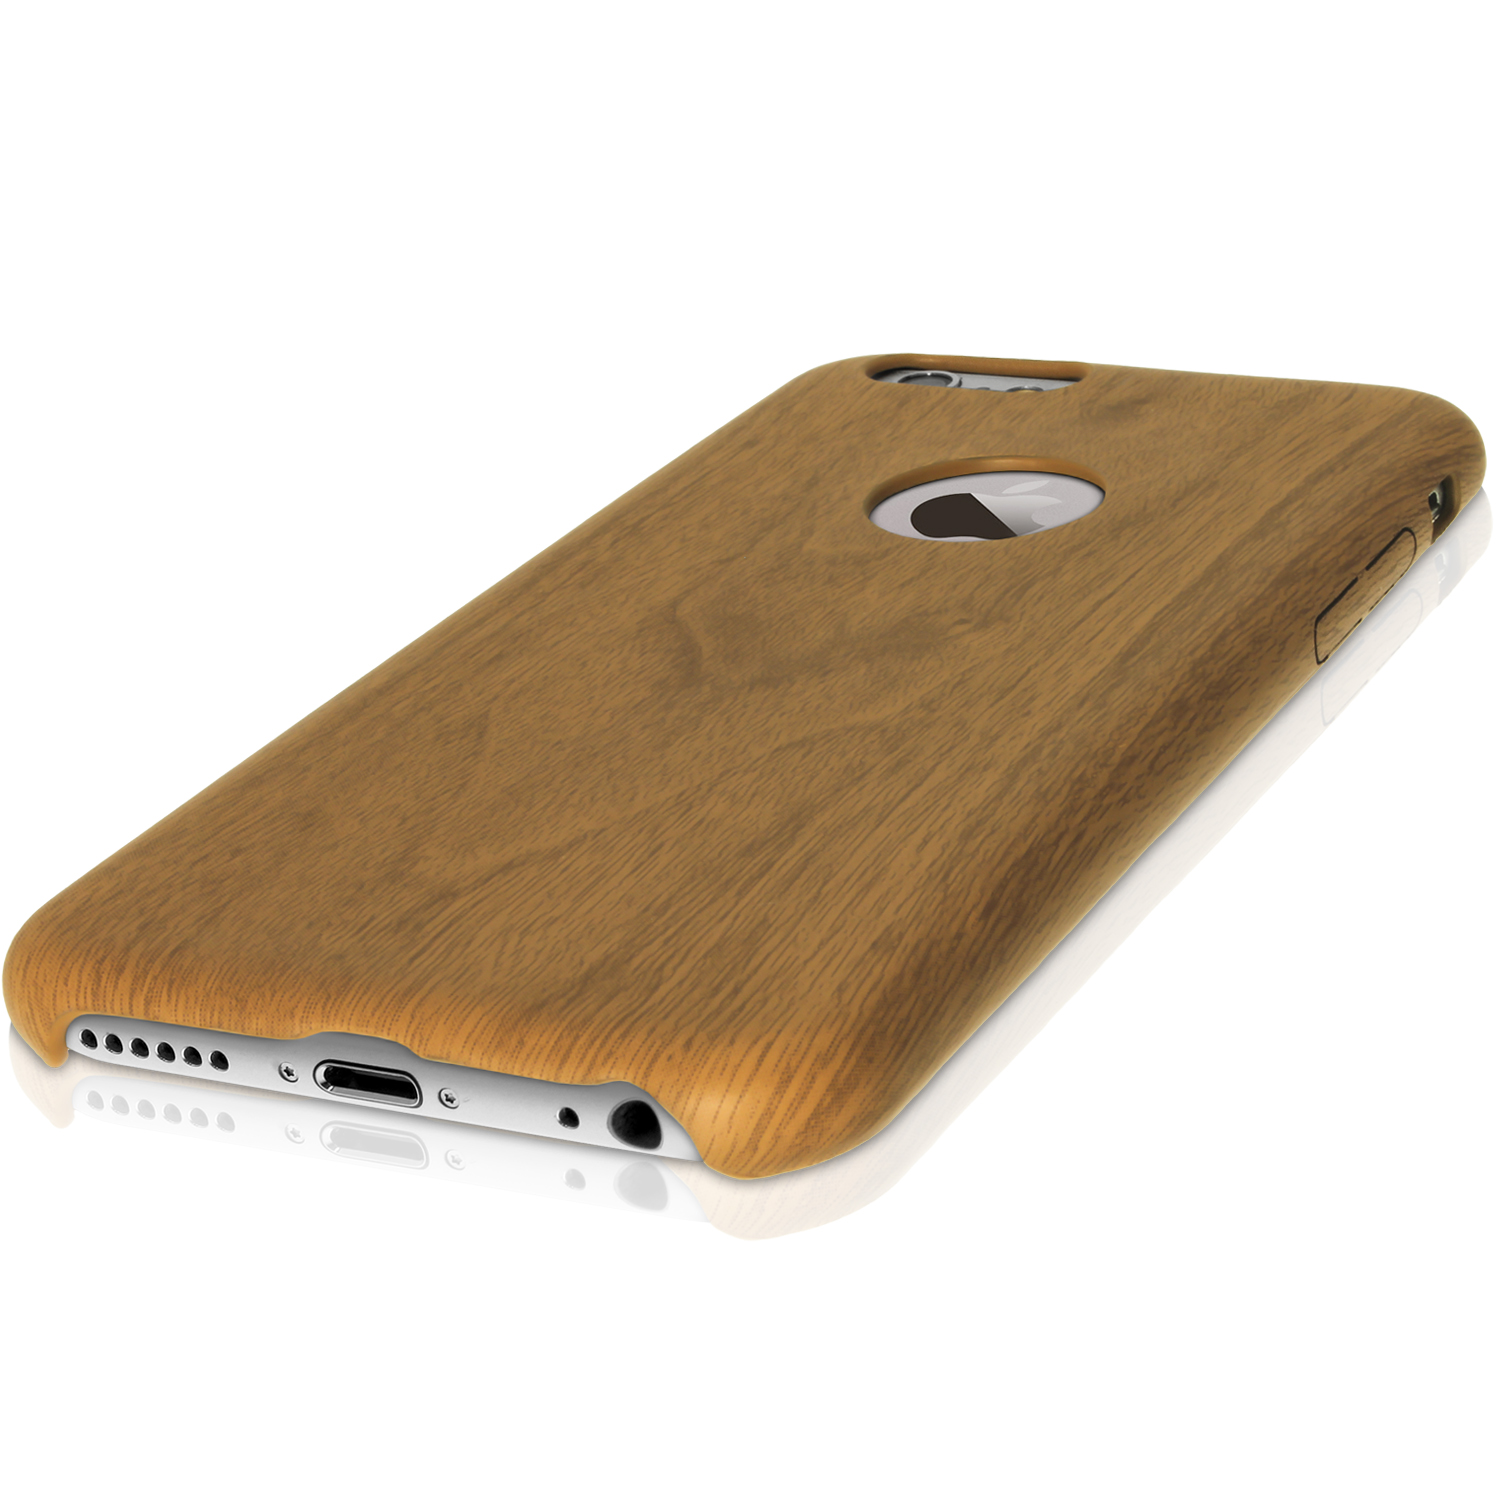 Igadgitz Oak Wood Effect Soft Pc Case For Apple Iphone 6